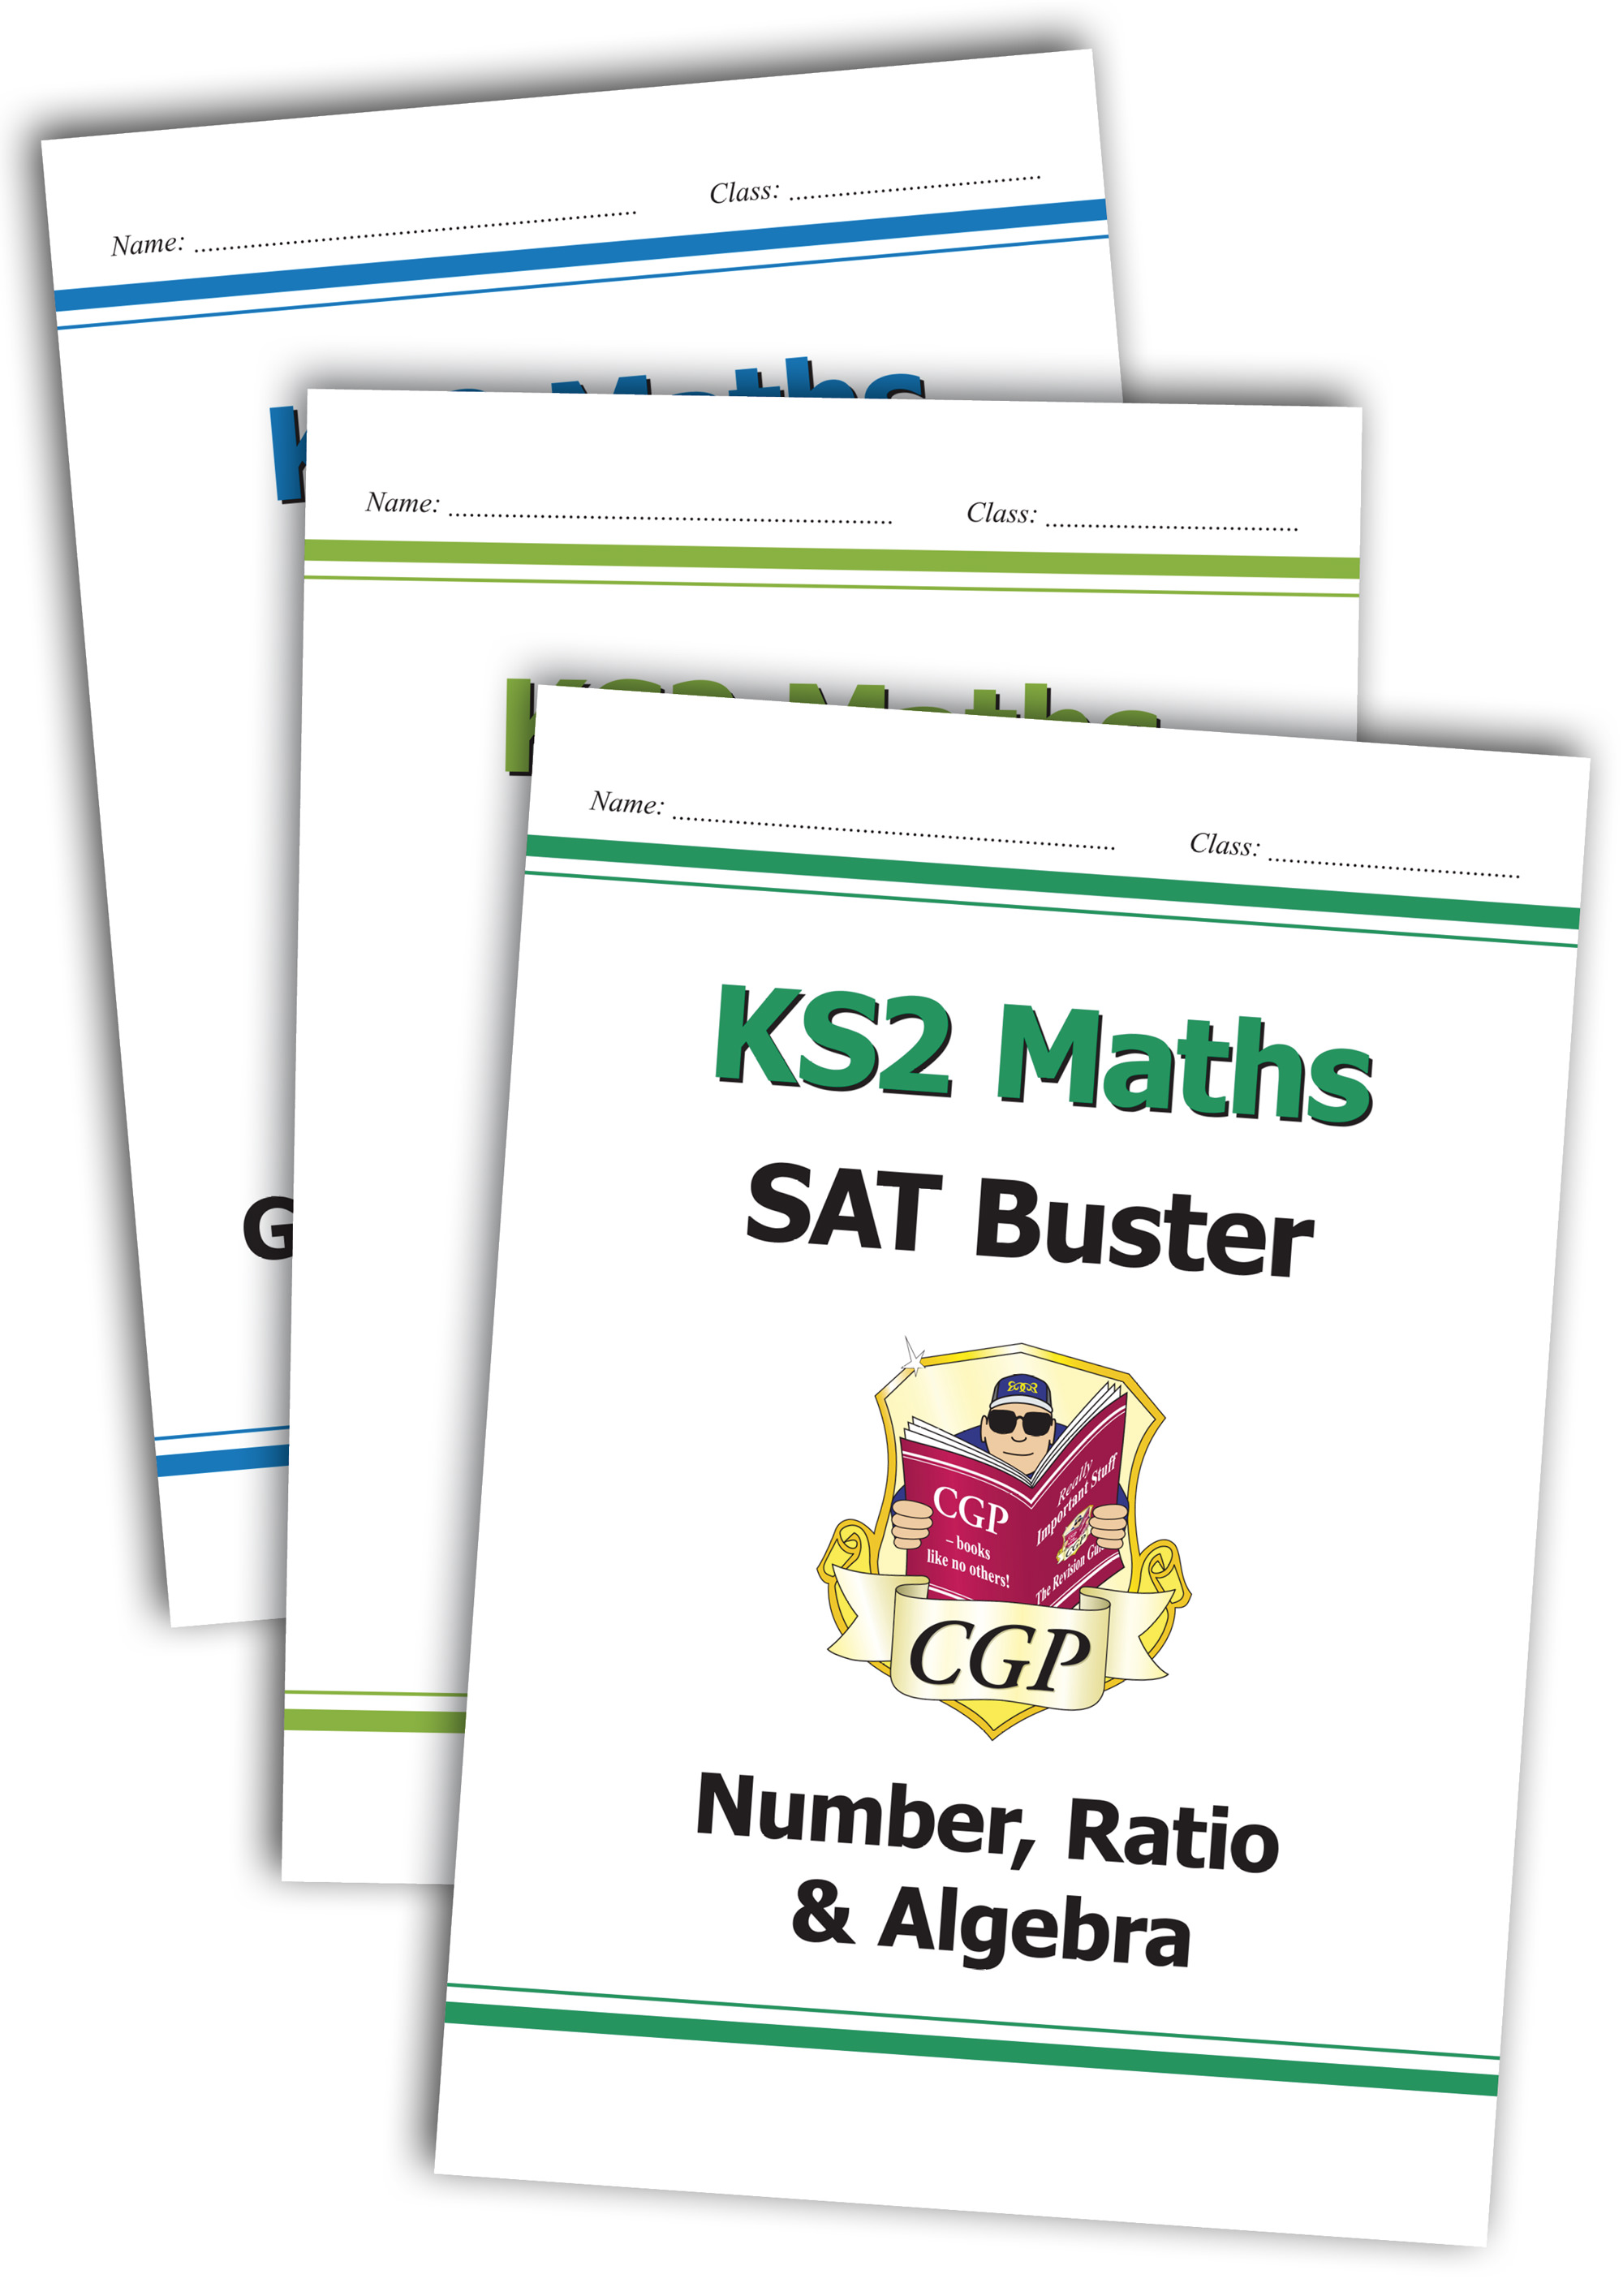 M6SBB23 - Complete KS2 Maths SAT Buster Book 1 Bundle - incl answers (for tests in 2019)